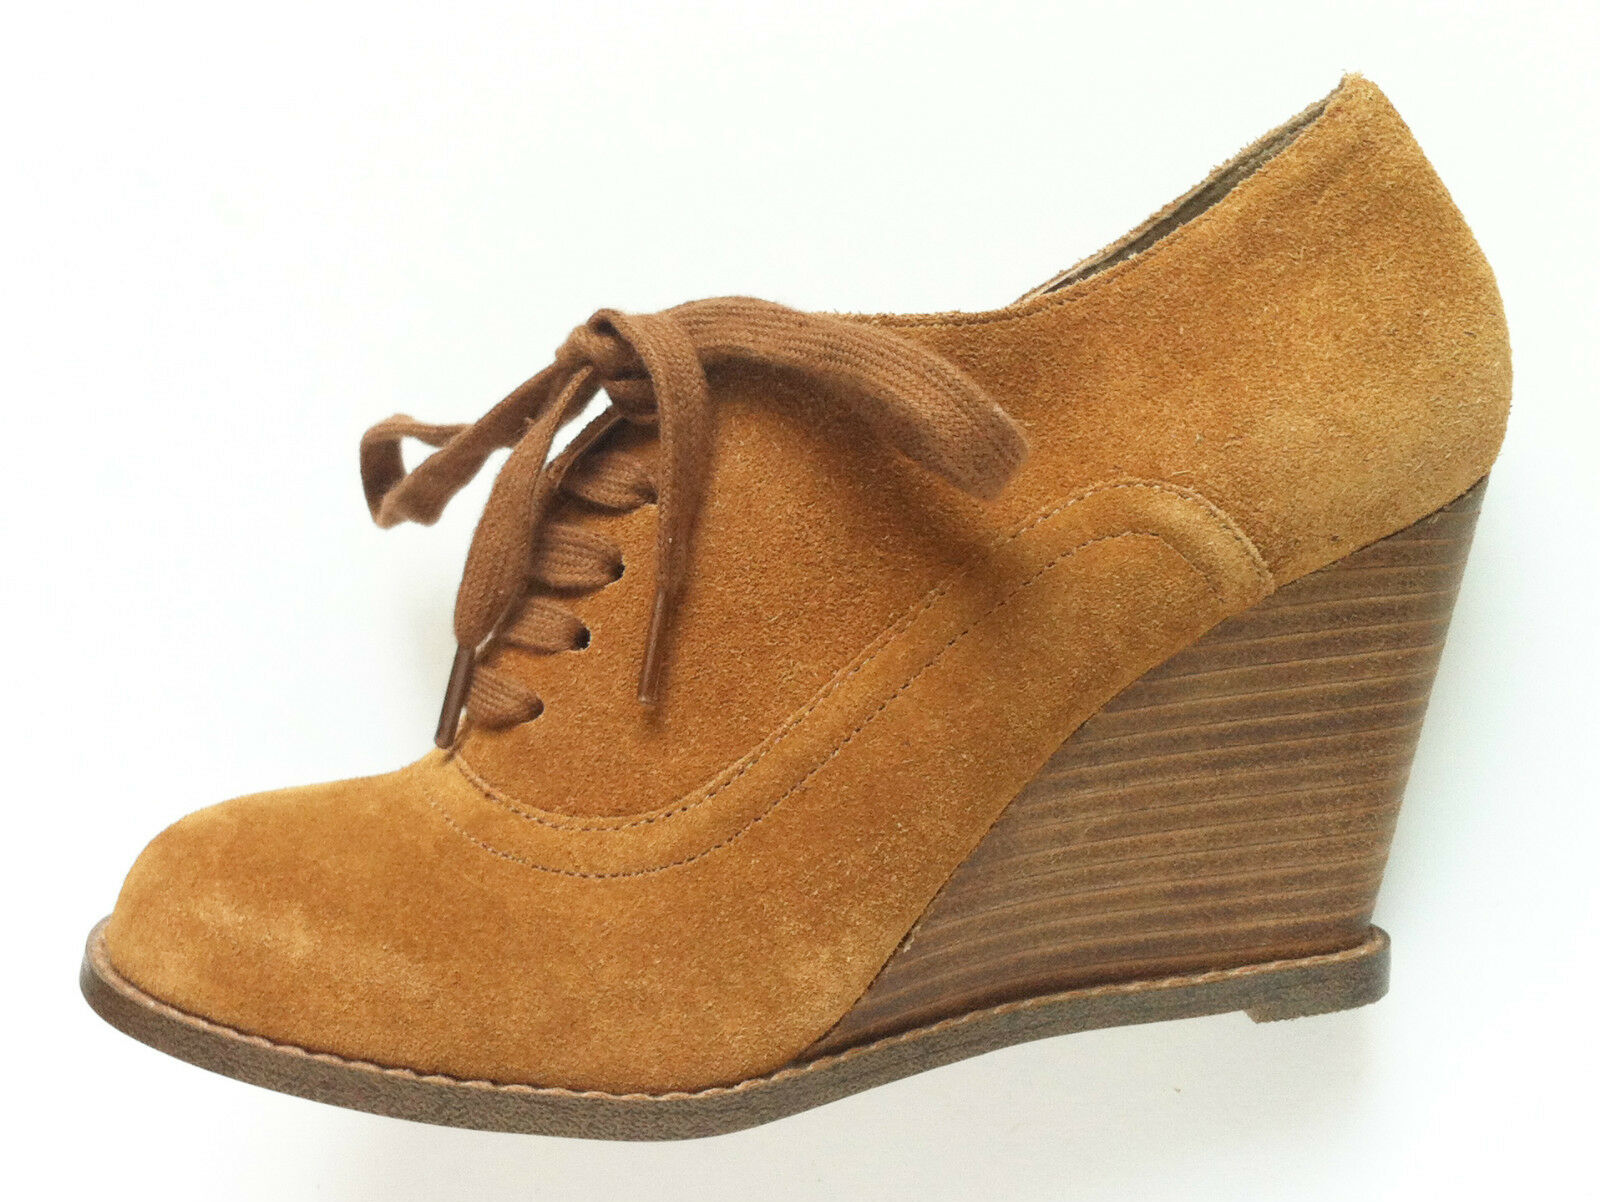 OFFICE High Heel Wedge Schuhes Ankle Stiefel Tan Braun Suede Lace Up Größe 3 EU 36